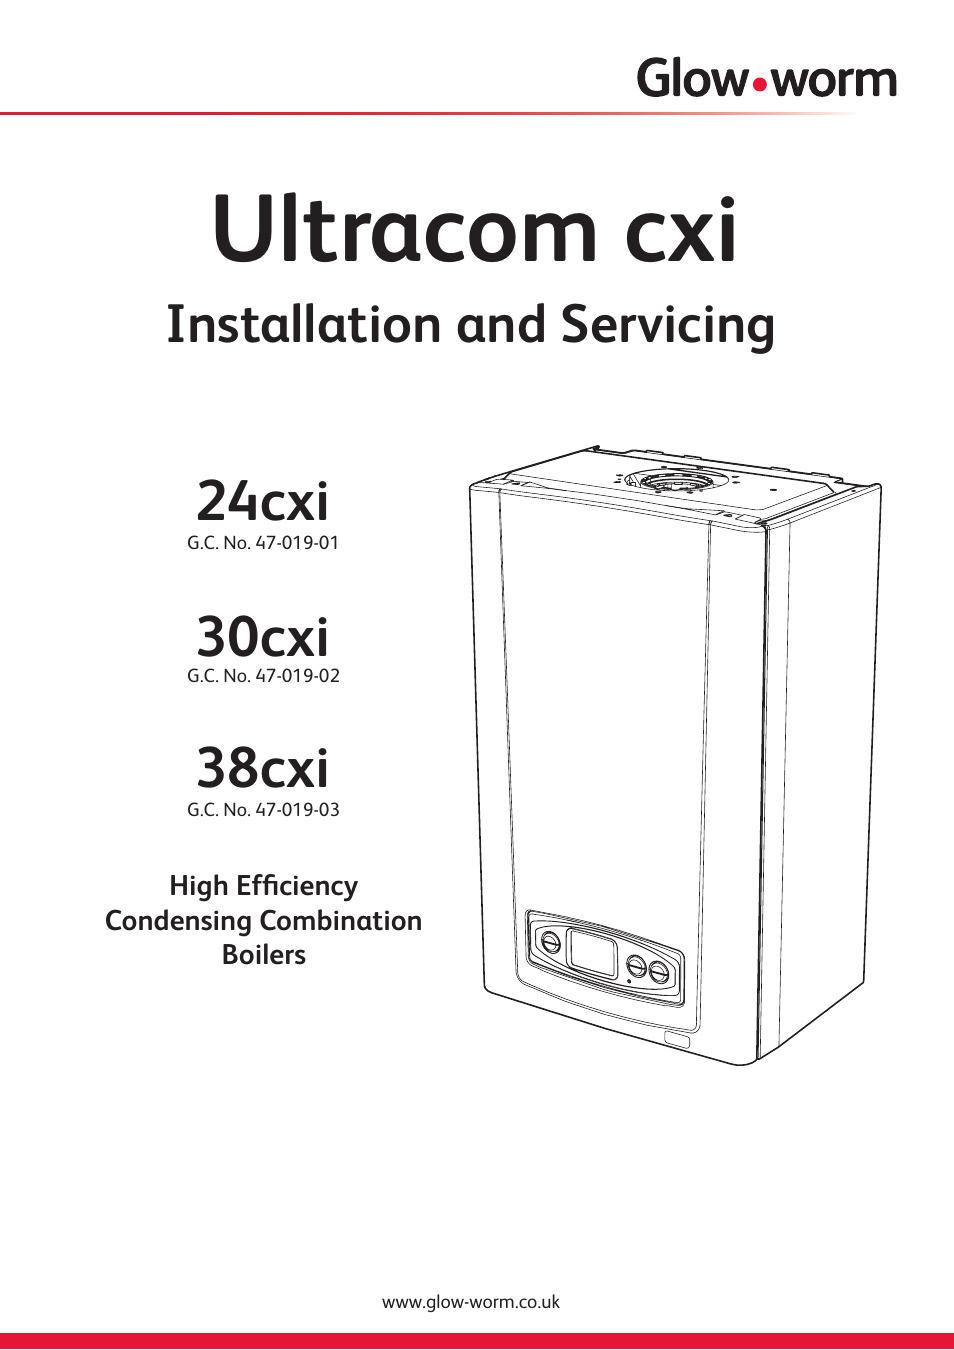 Glow-worm Ultracom cxi User Manual | 68 pages